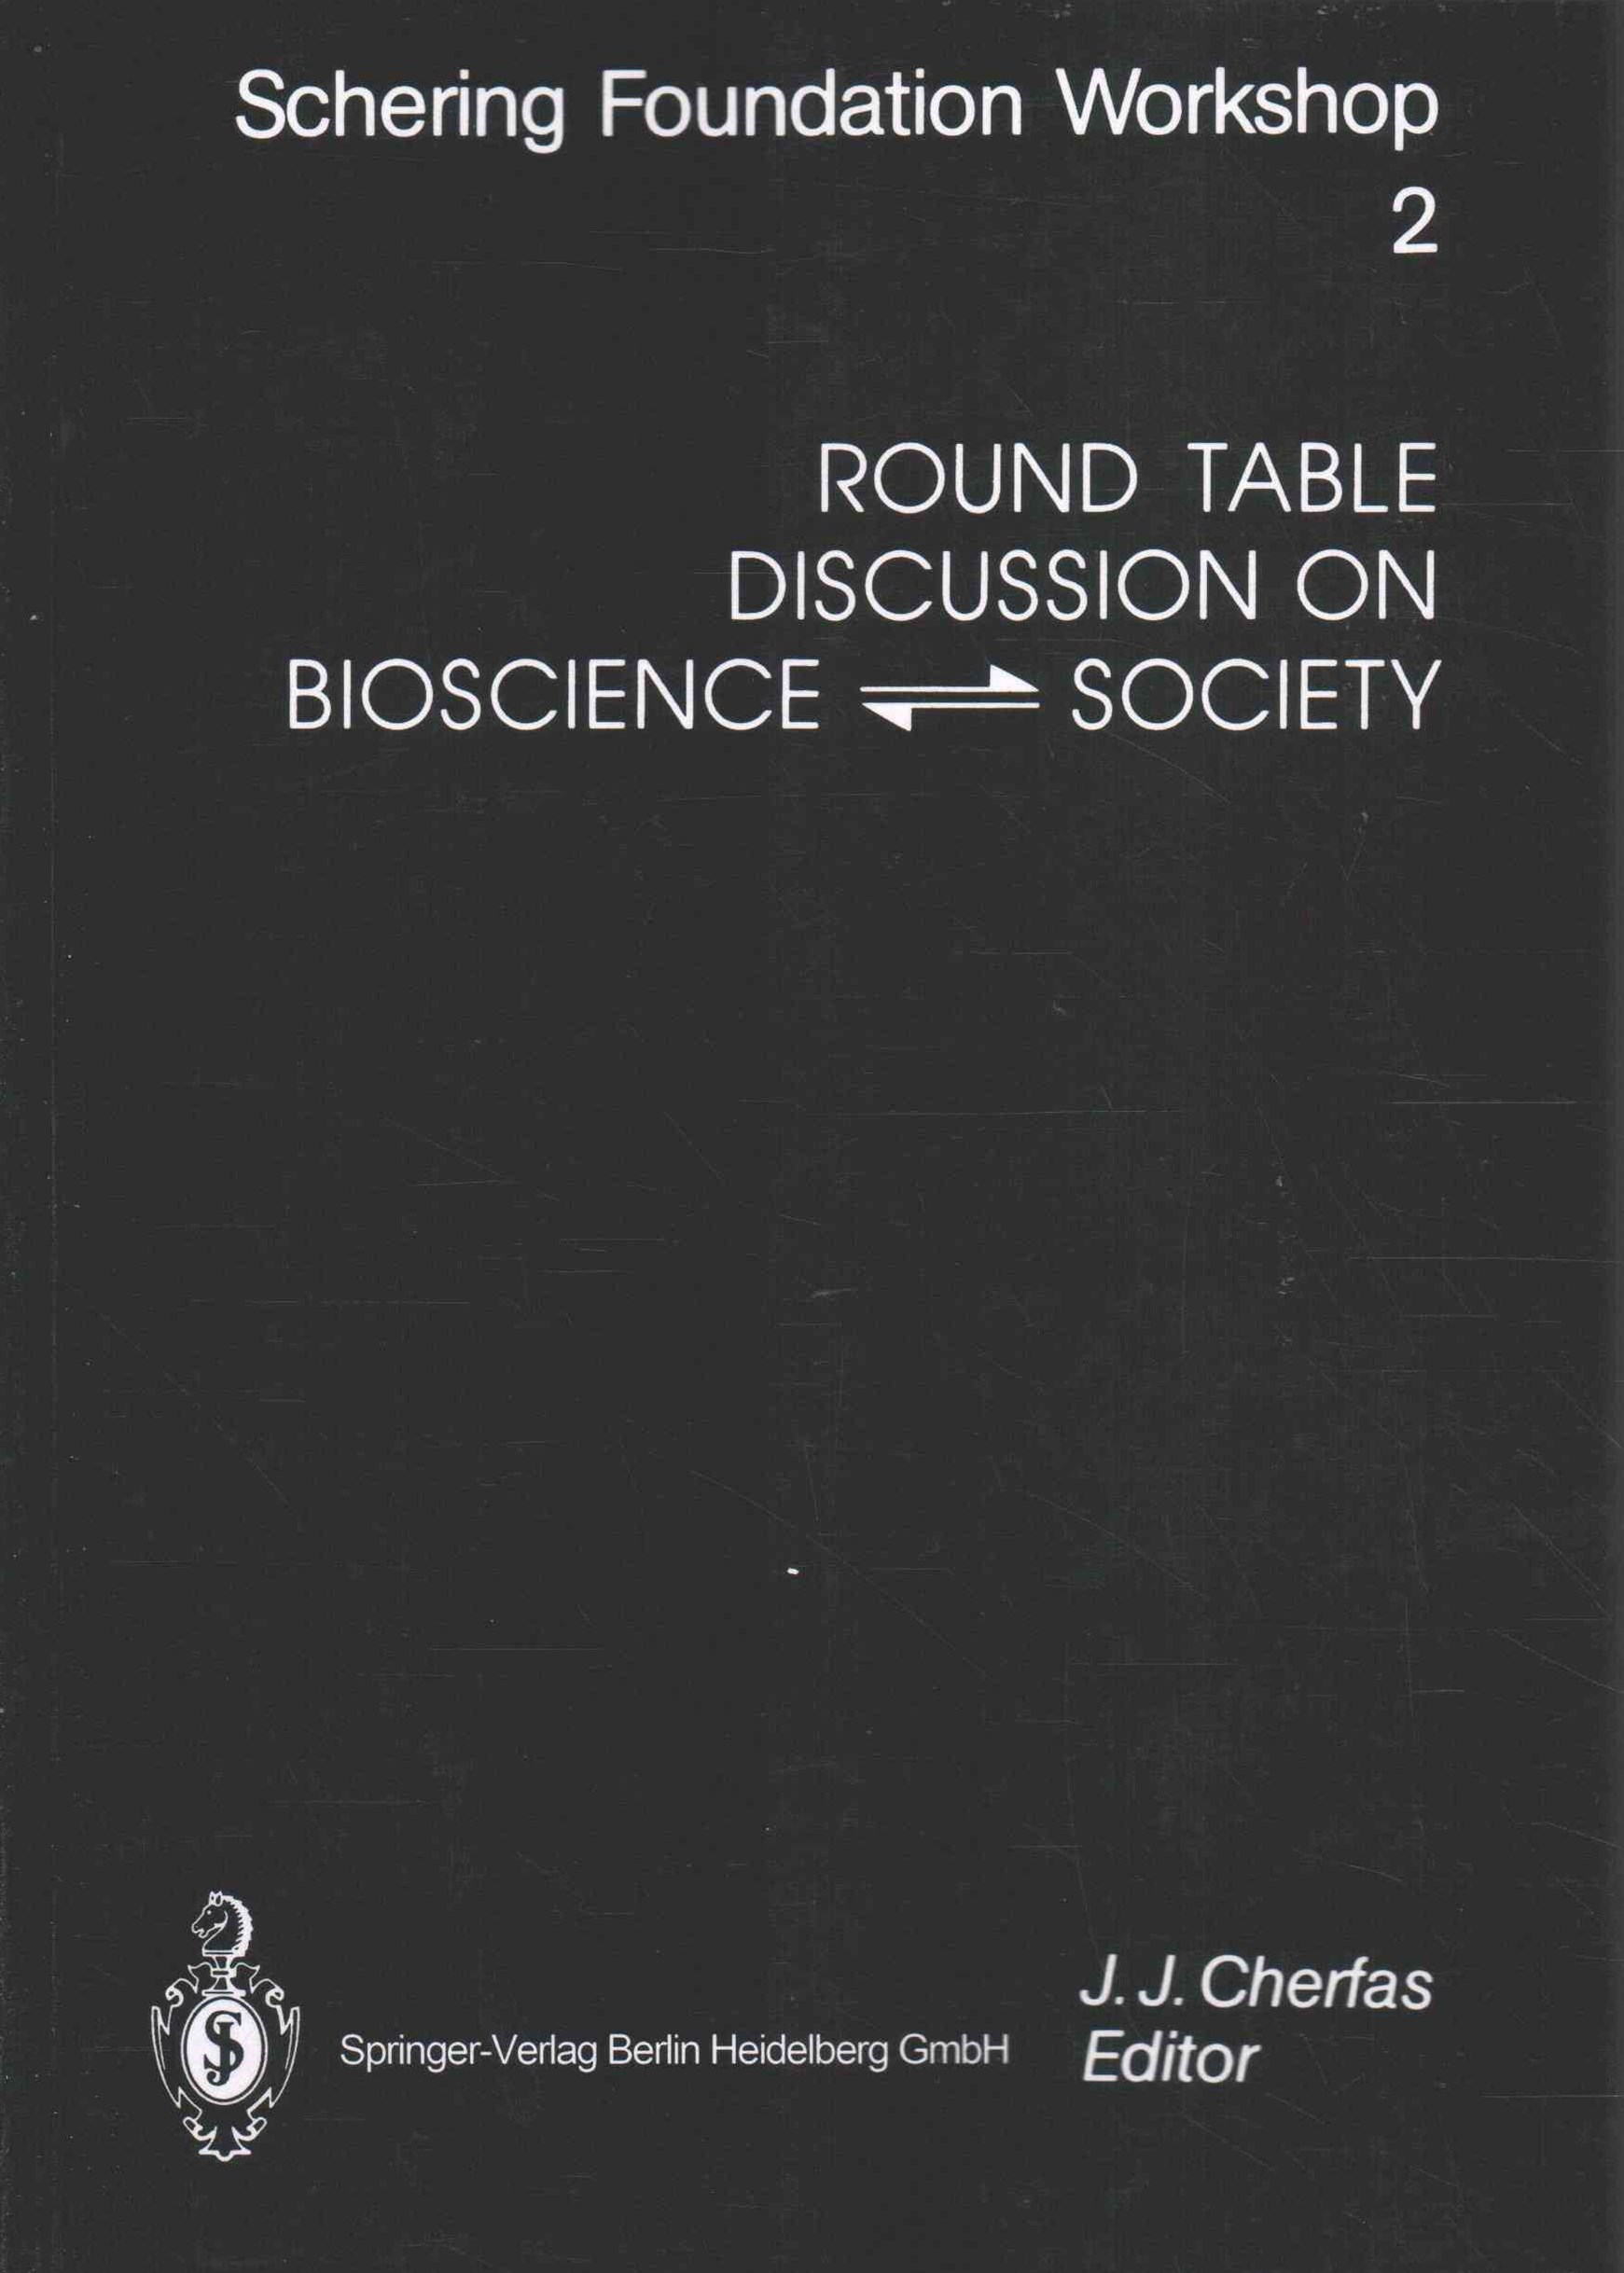 Round Table Discussion on Bioscience Society